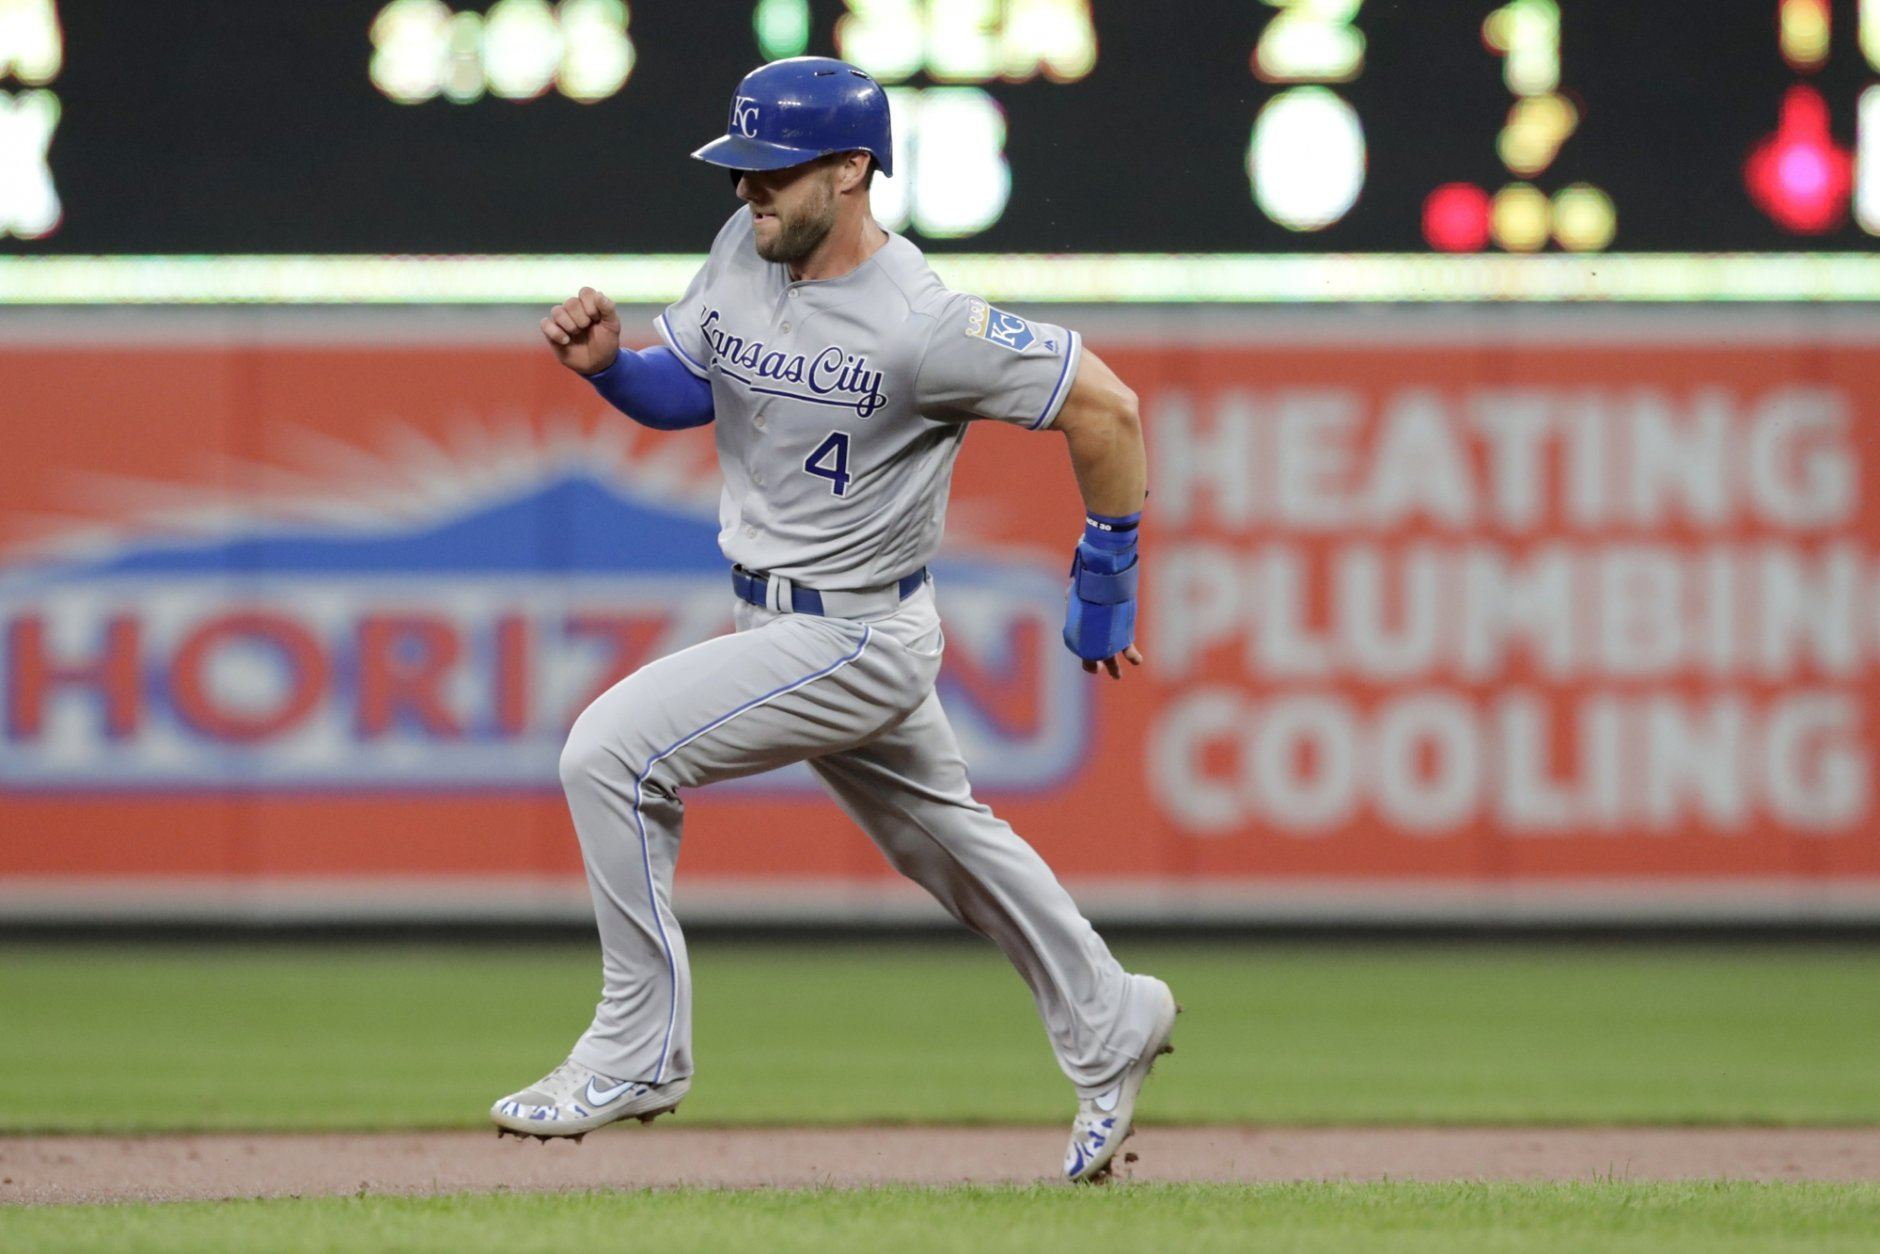 <p>Kansas City Royals&#8217; Alex Gordon advances to third on a single by Ryan O&#8217;Hearn off Baltimore Orioles starting pitcher Dylan Bundy during the second inning of a baseball game Tuesday, Aug. 20, 2019, in Baltimore.</p>